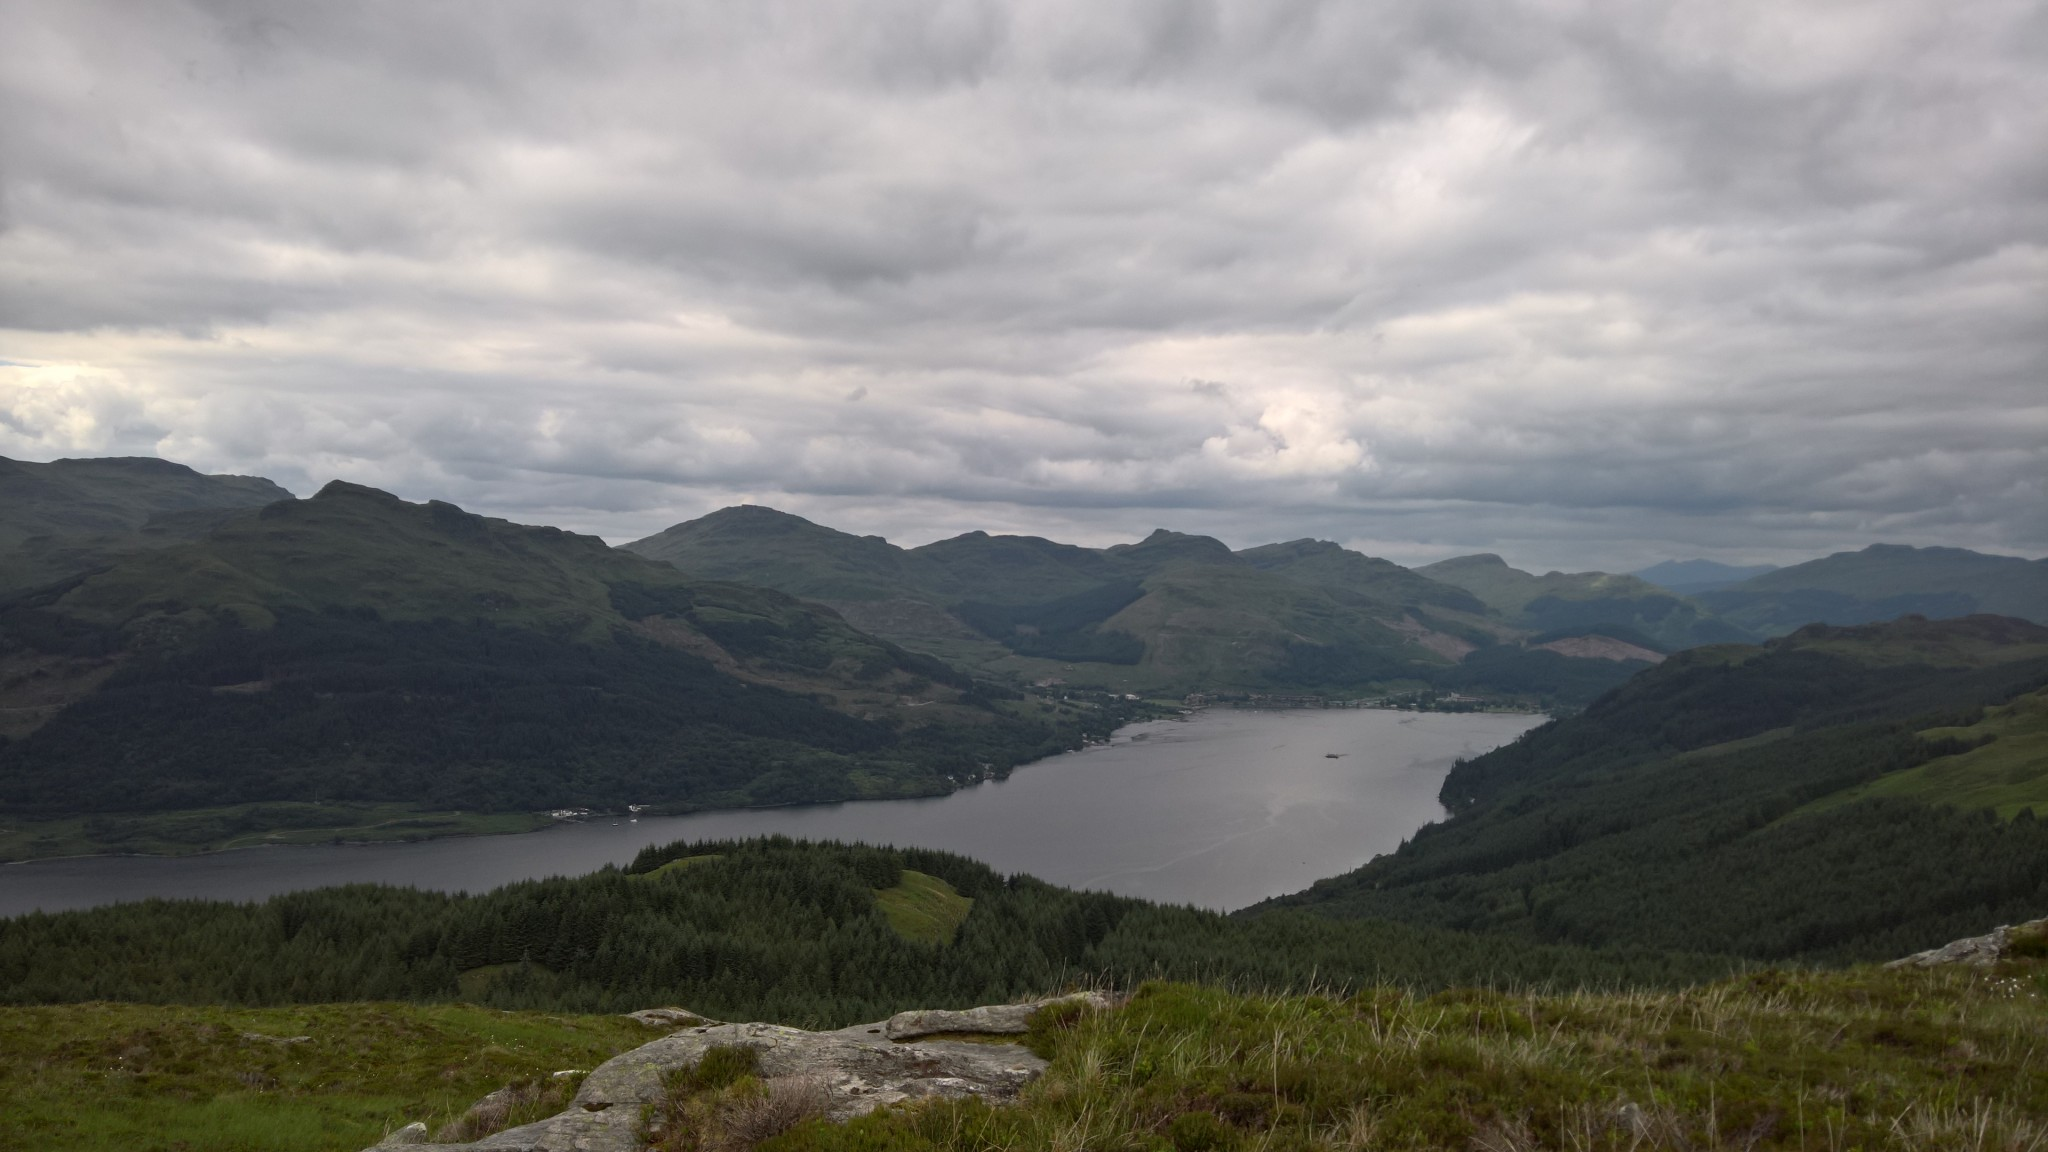 ViewRanger - The Saddle from Lochgoilhead - Promenad route in